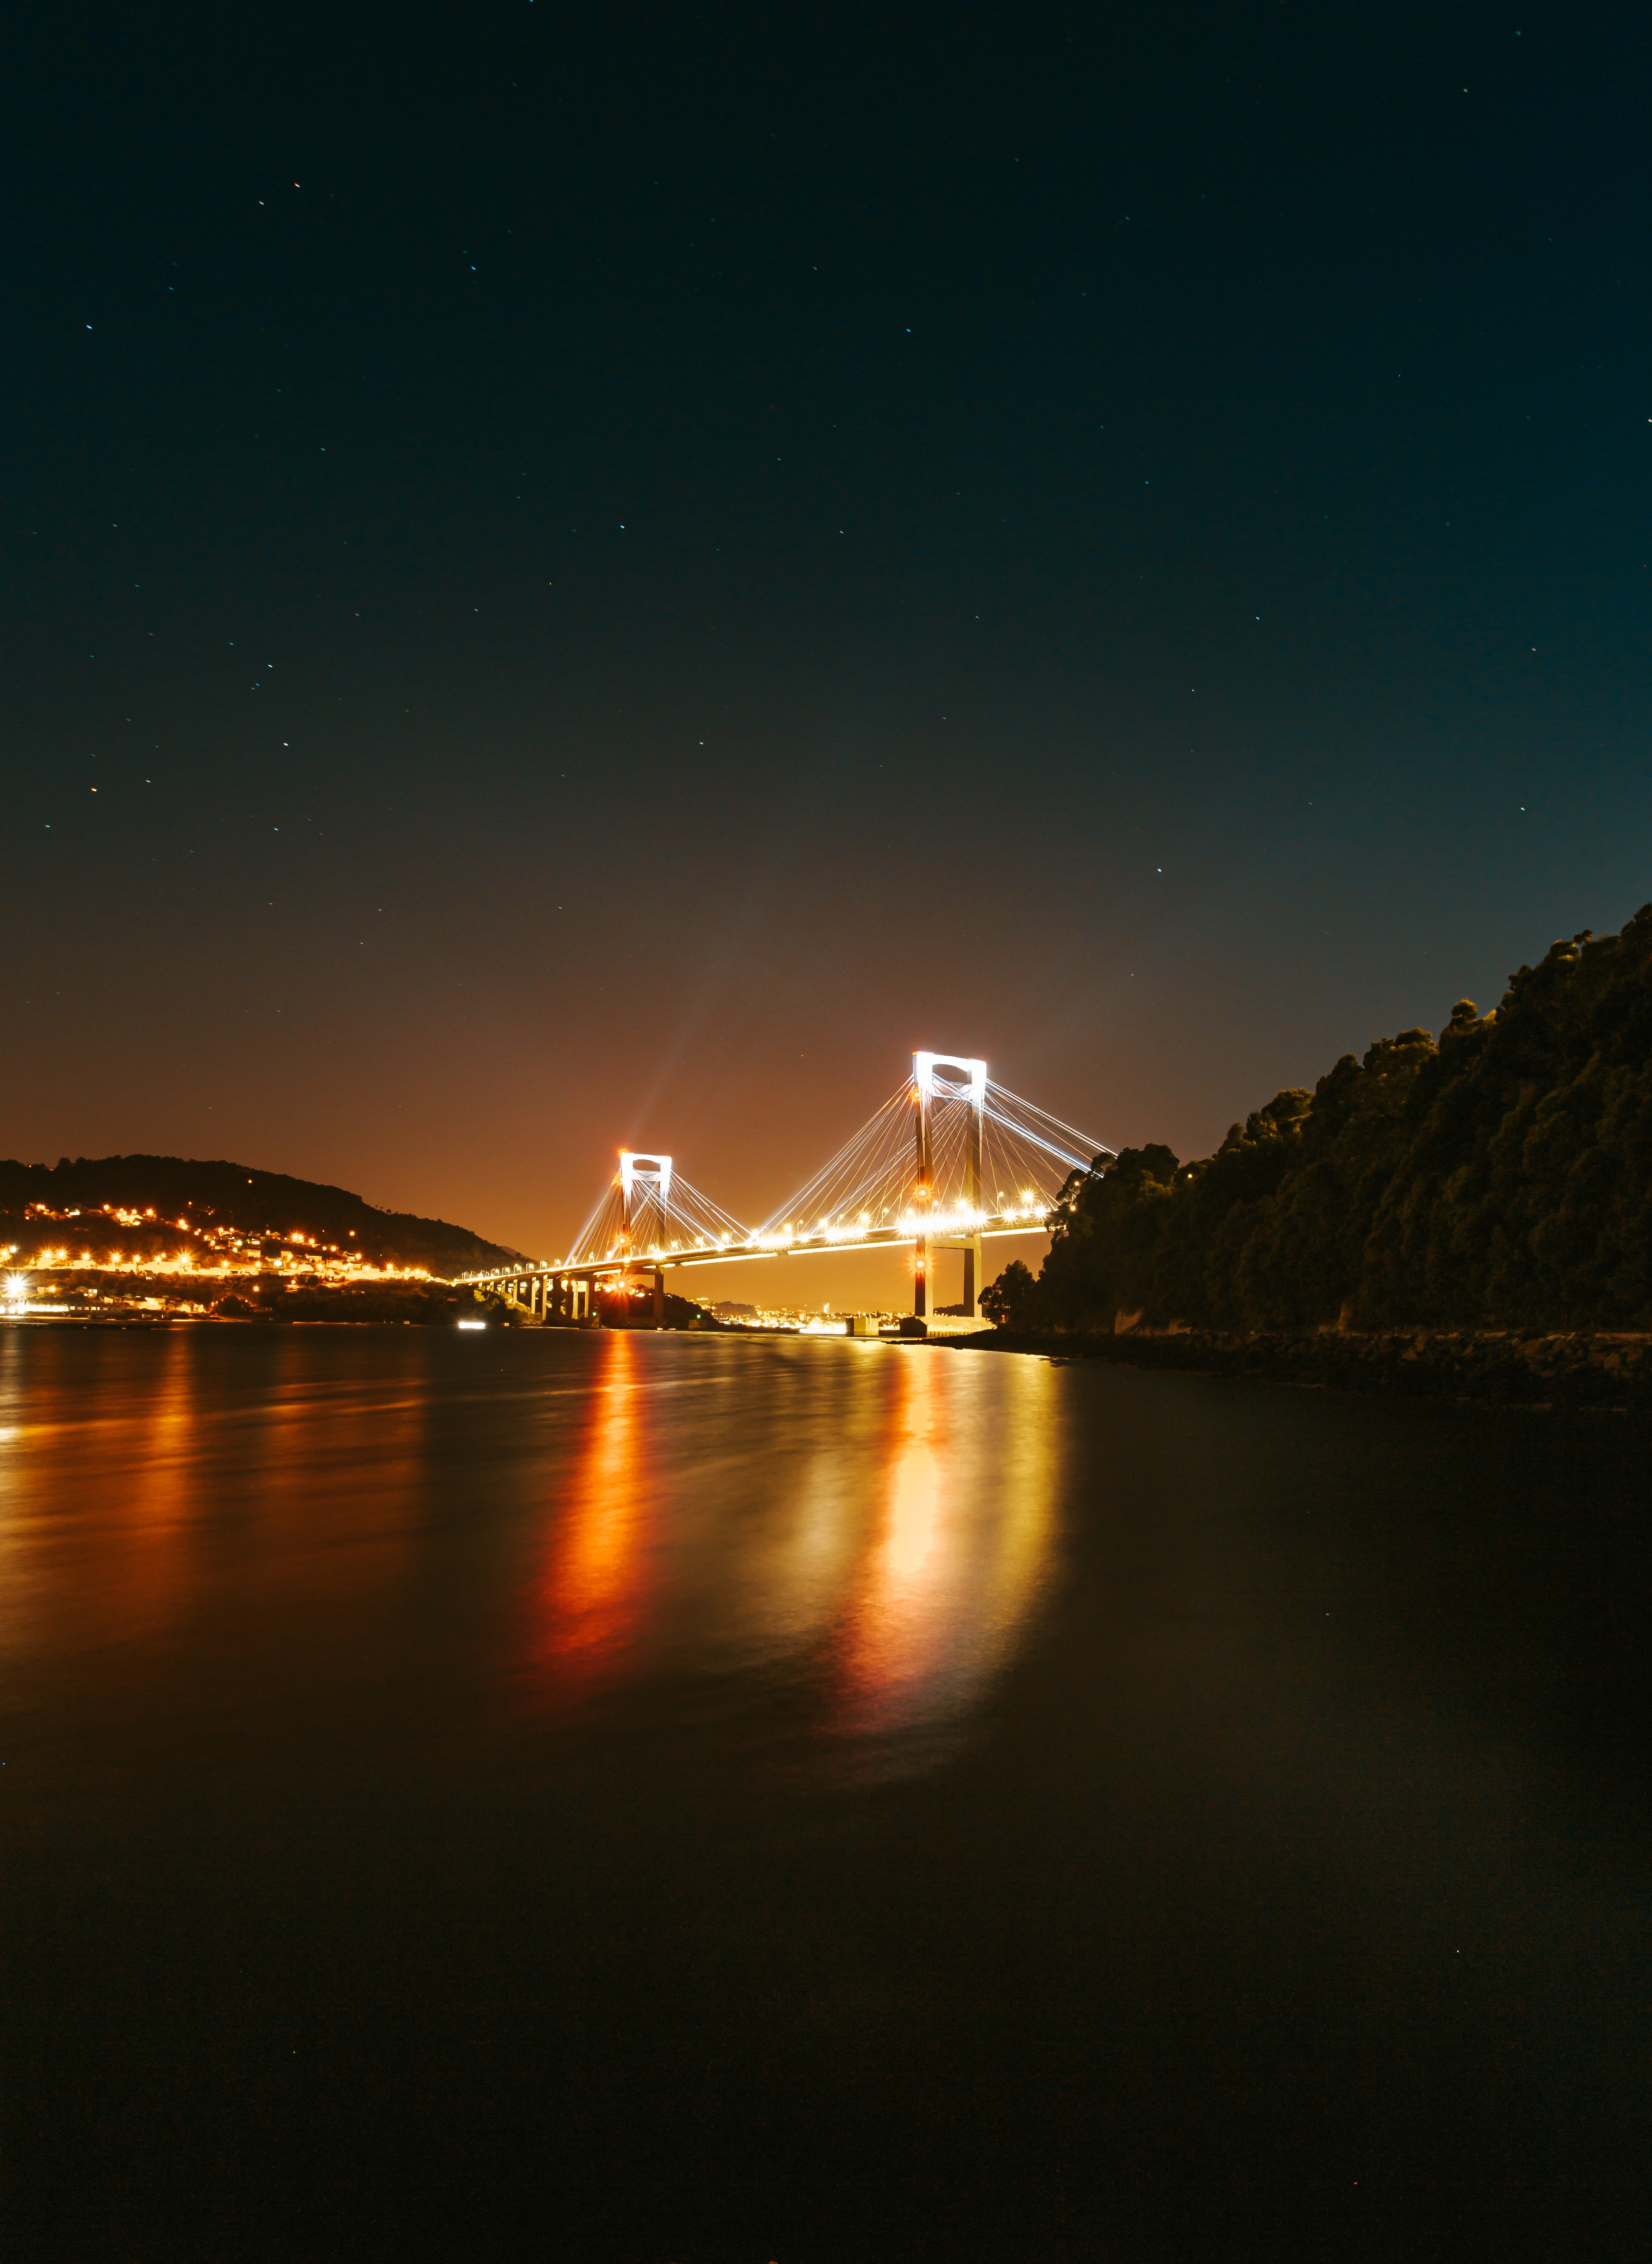 145465 download wallpaper Nature, Bridge, Glow, Sea, Night, Lights screensavers and pictures for free